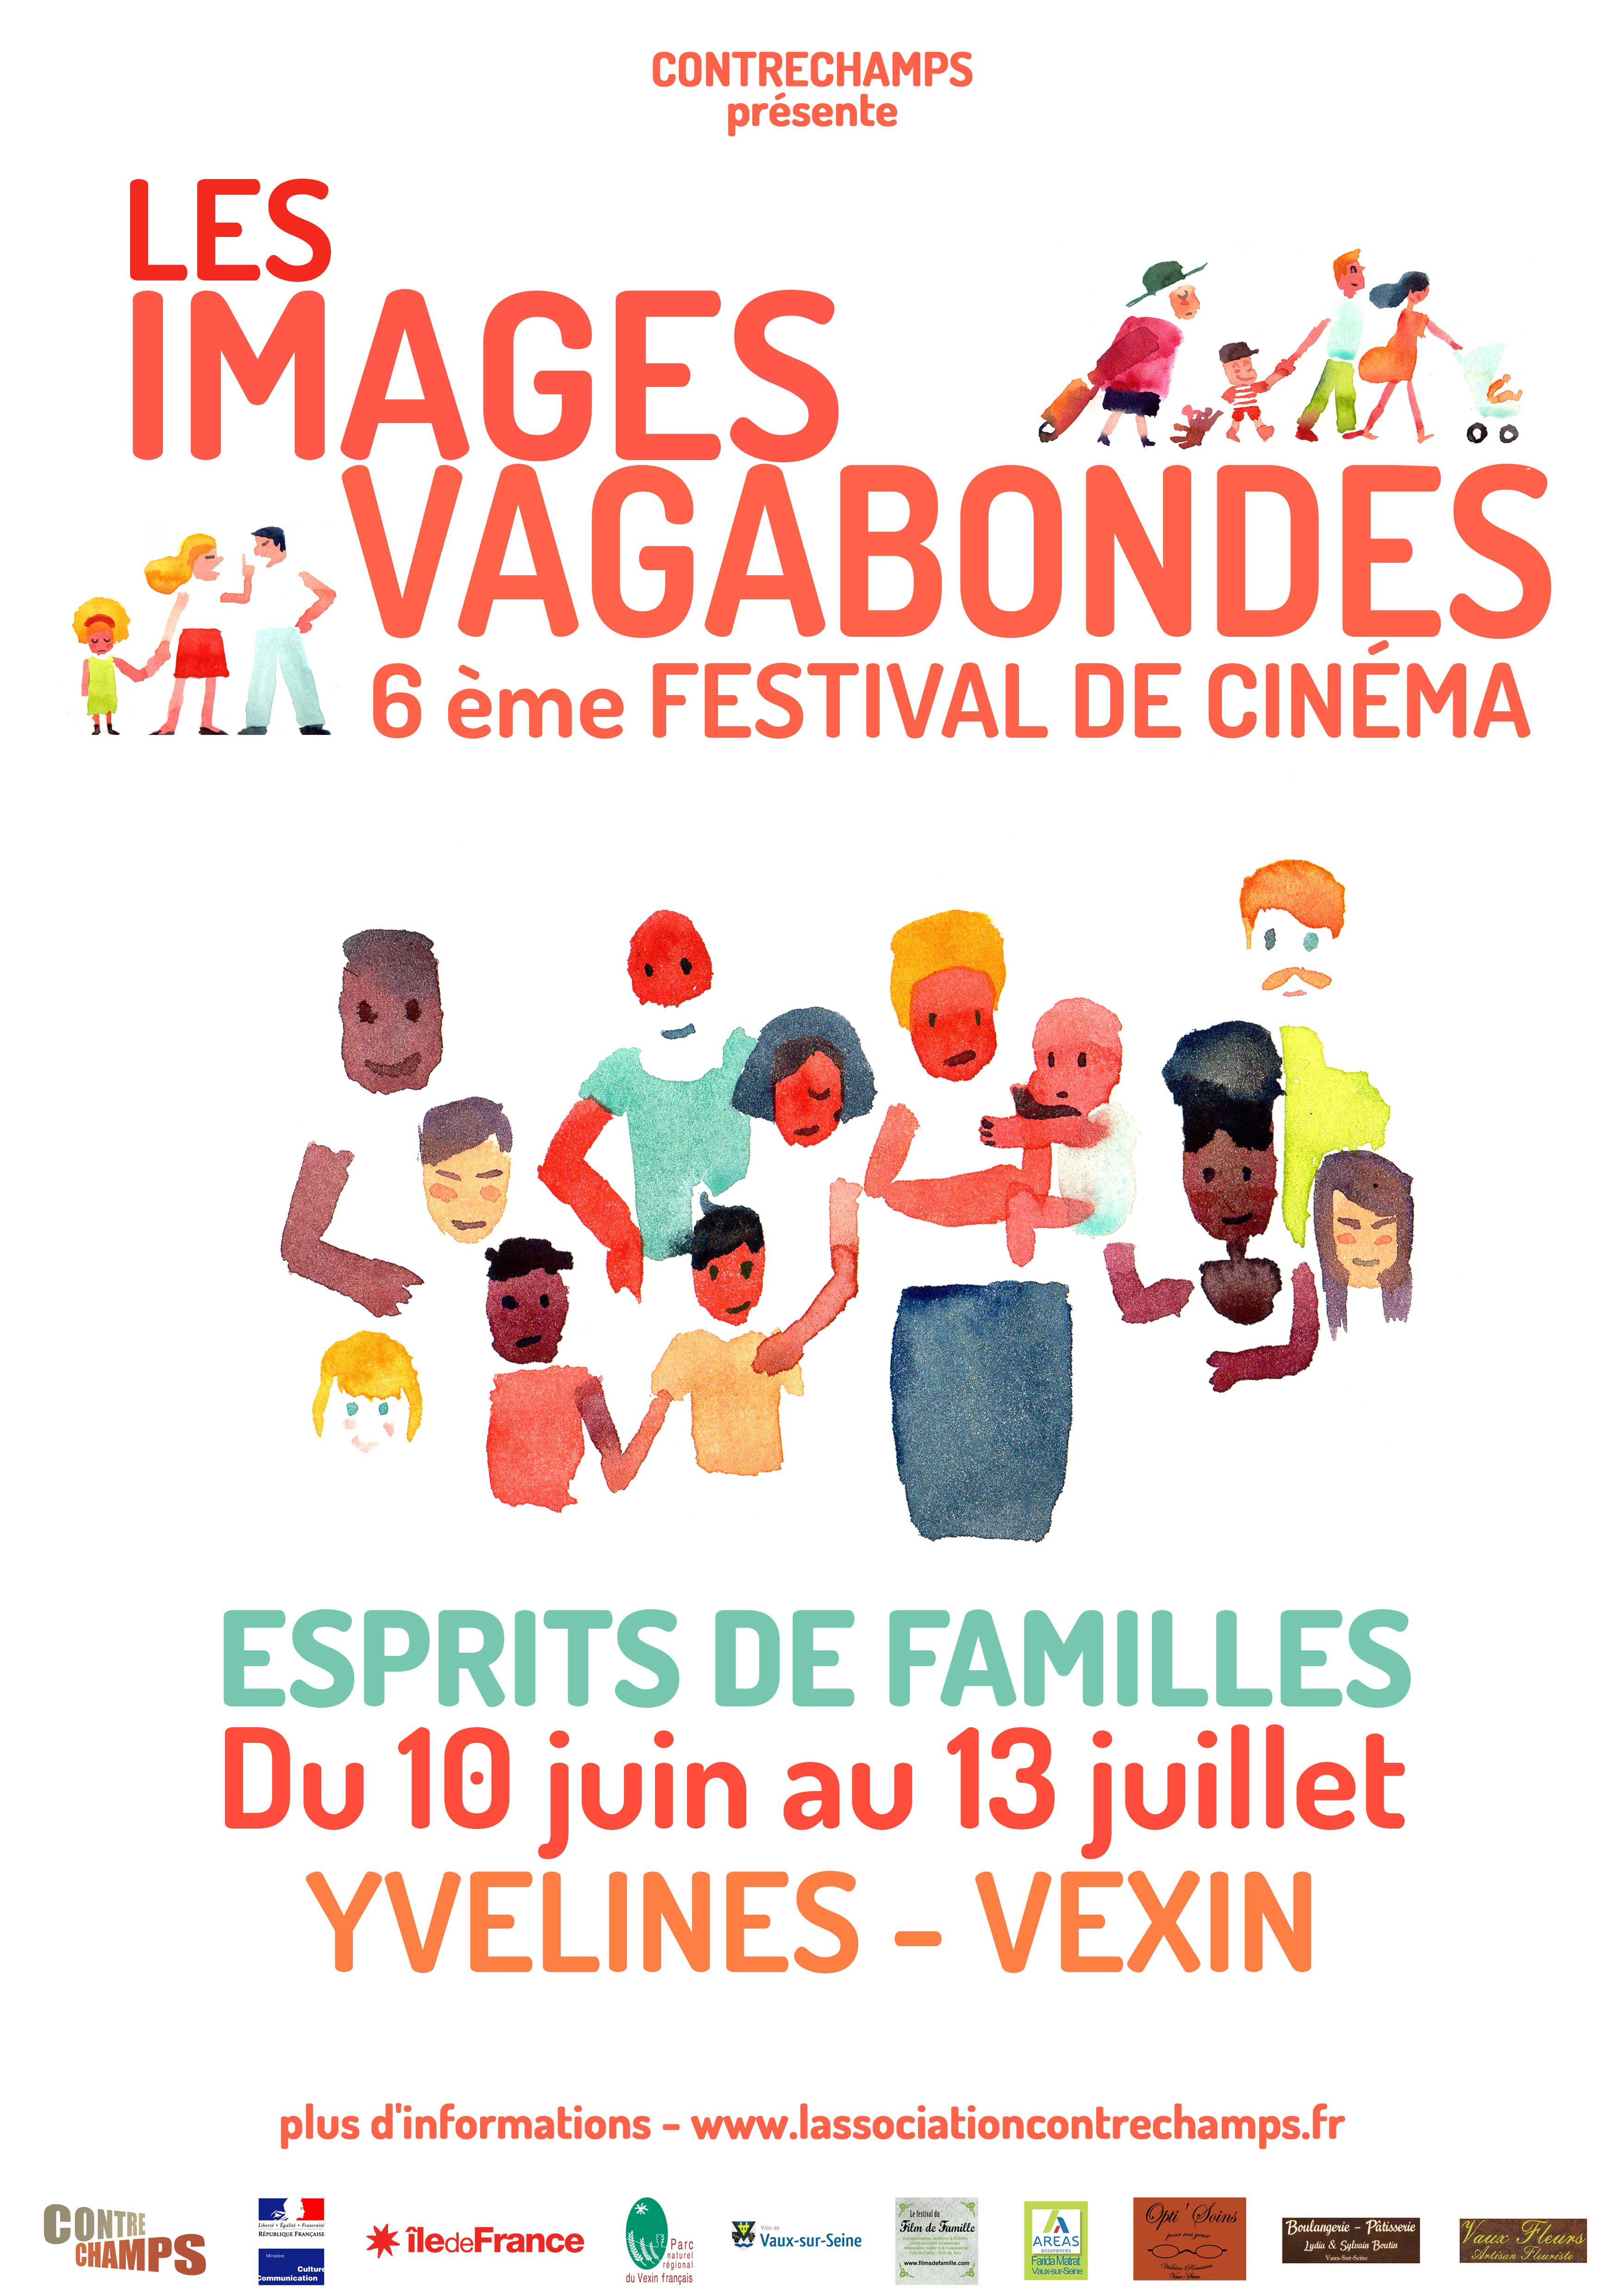 Festival de cin ma les images vagabondes yvelines tourisme for Sortir yvelines week end